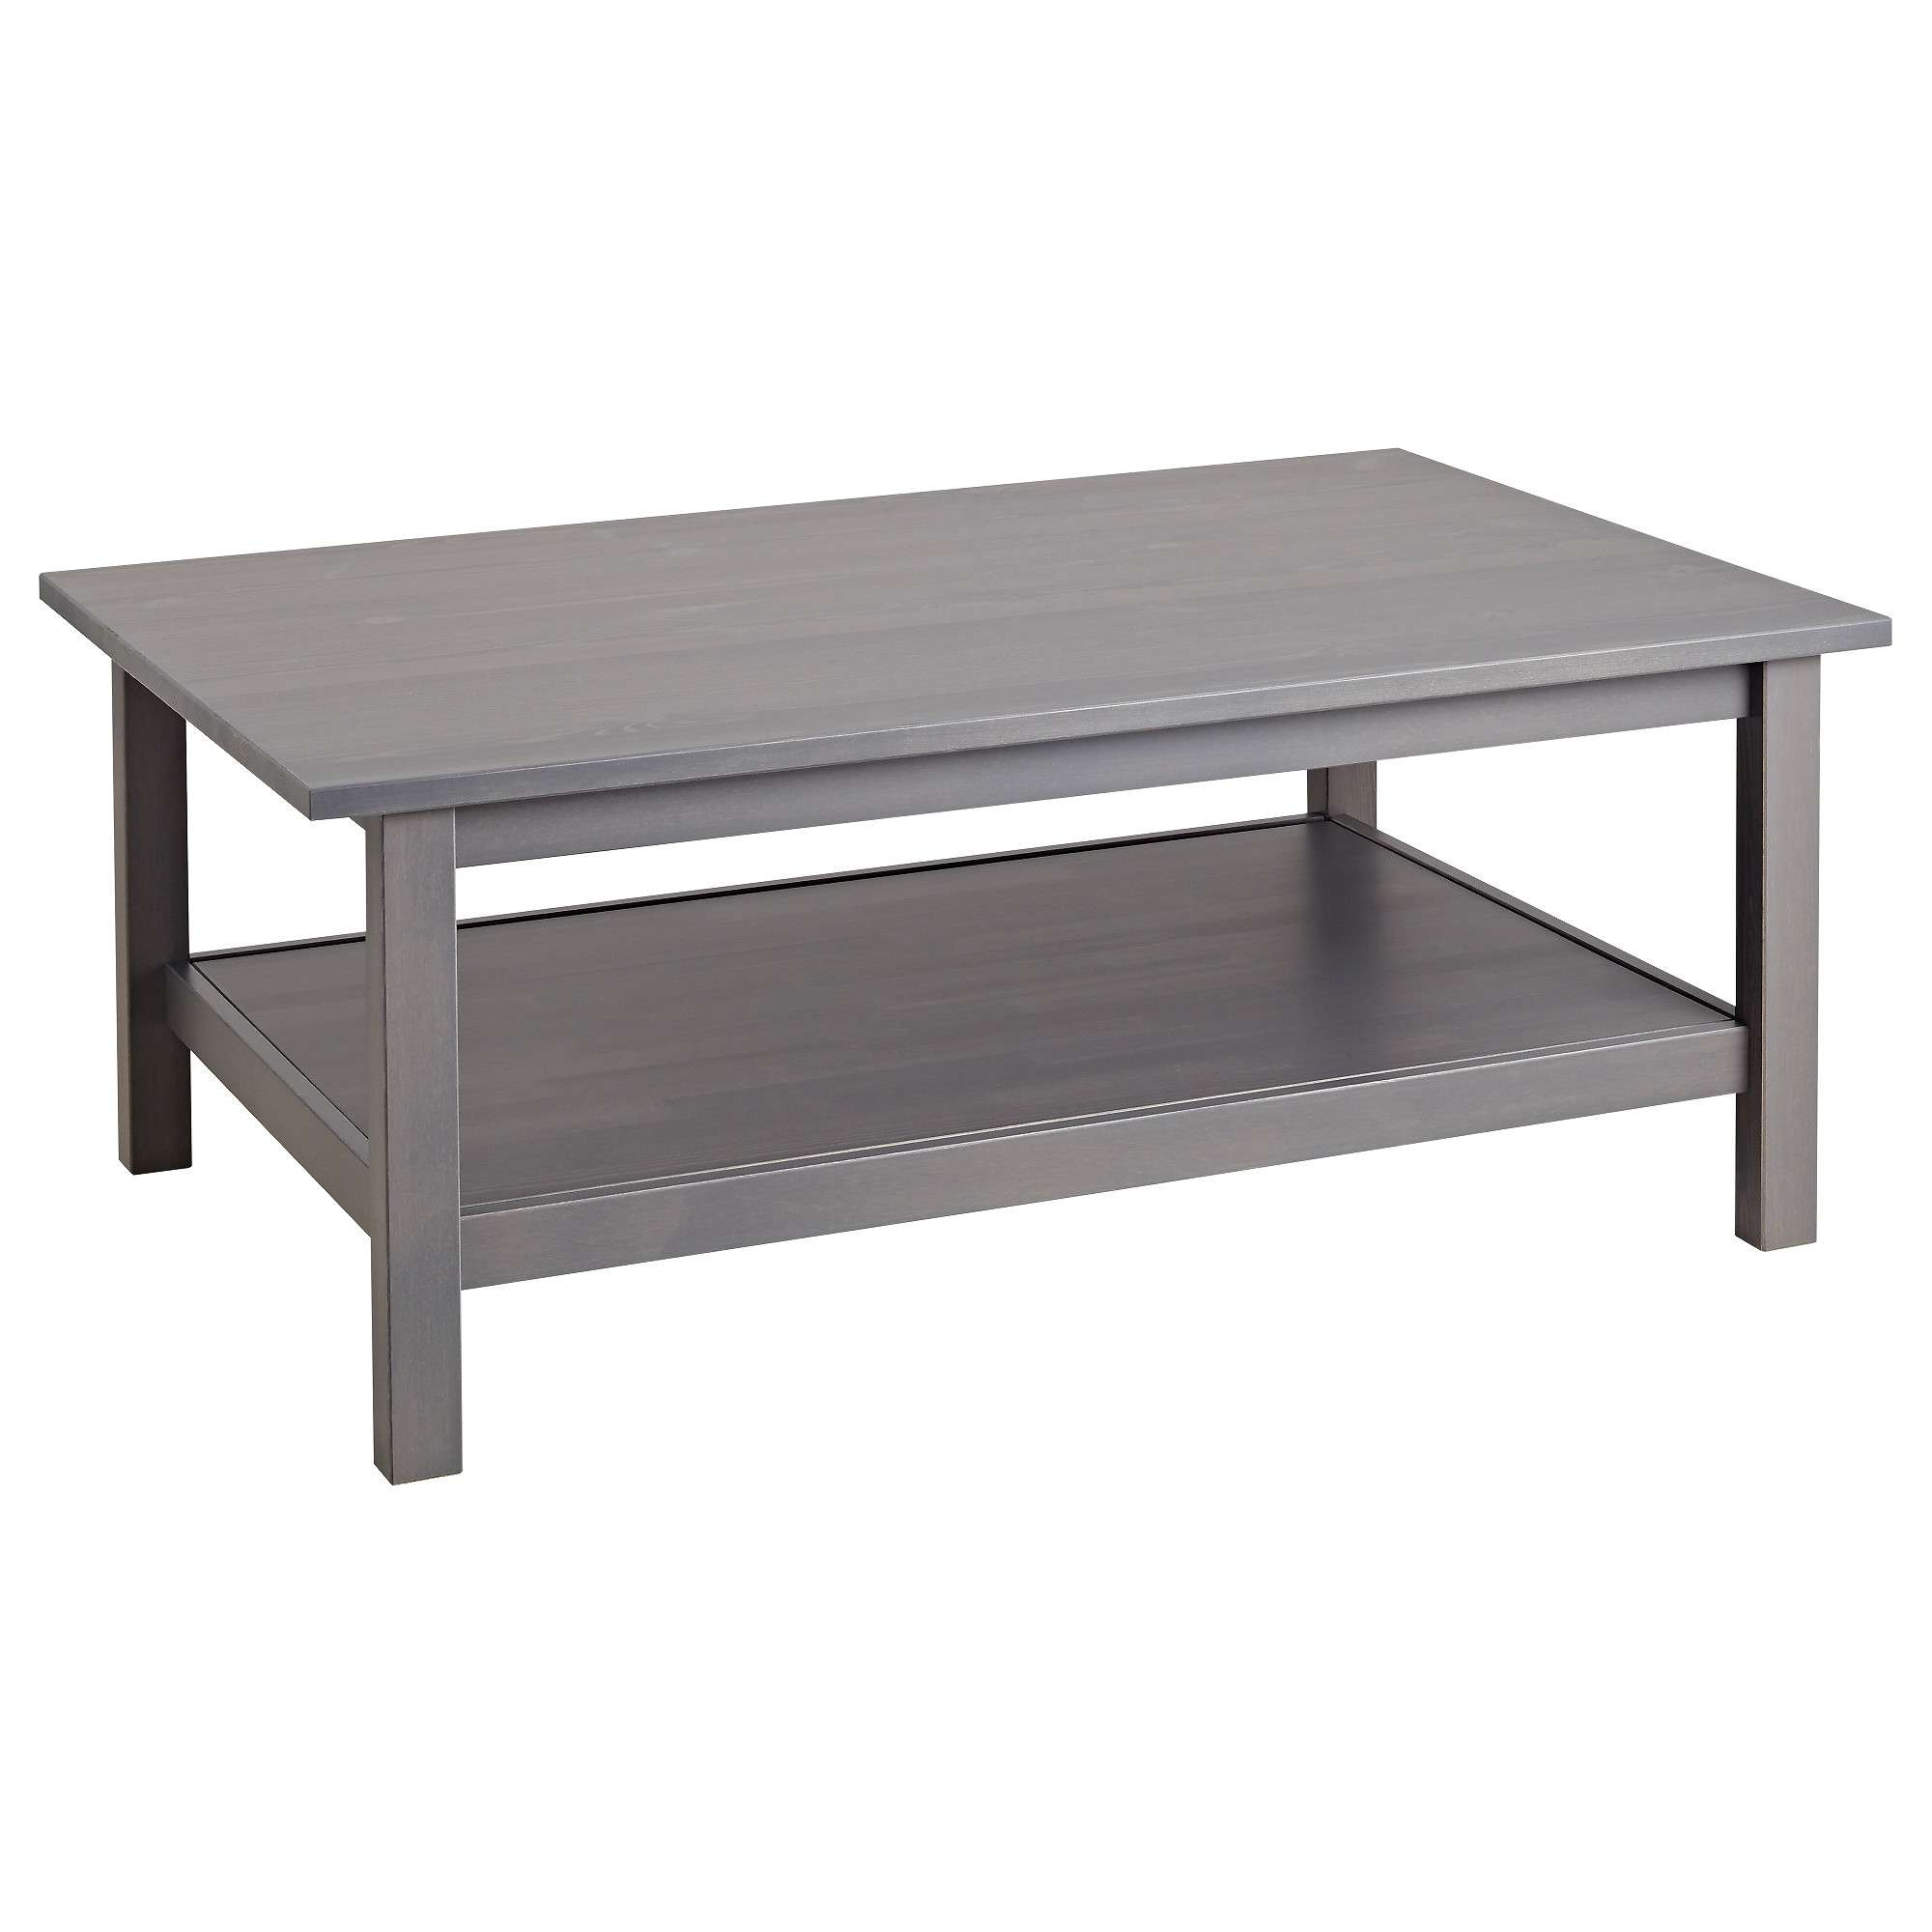 Coffee Tables – Glass & Wooden Coffee Tables – Ikea For Preferred Floating Glass Coffee Tables (View 6 of 20)